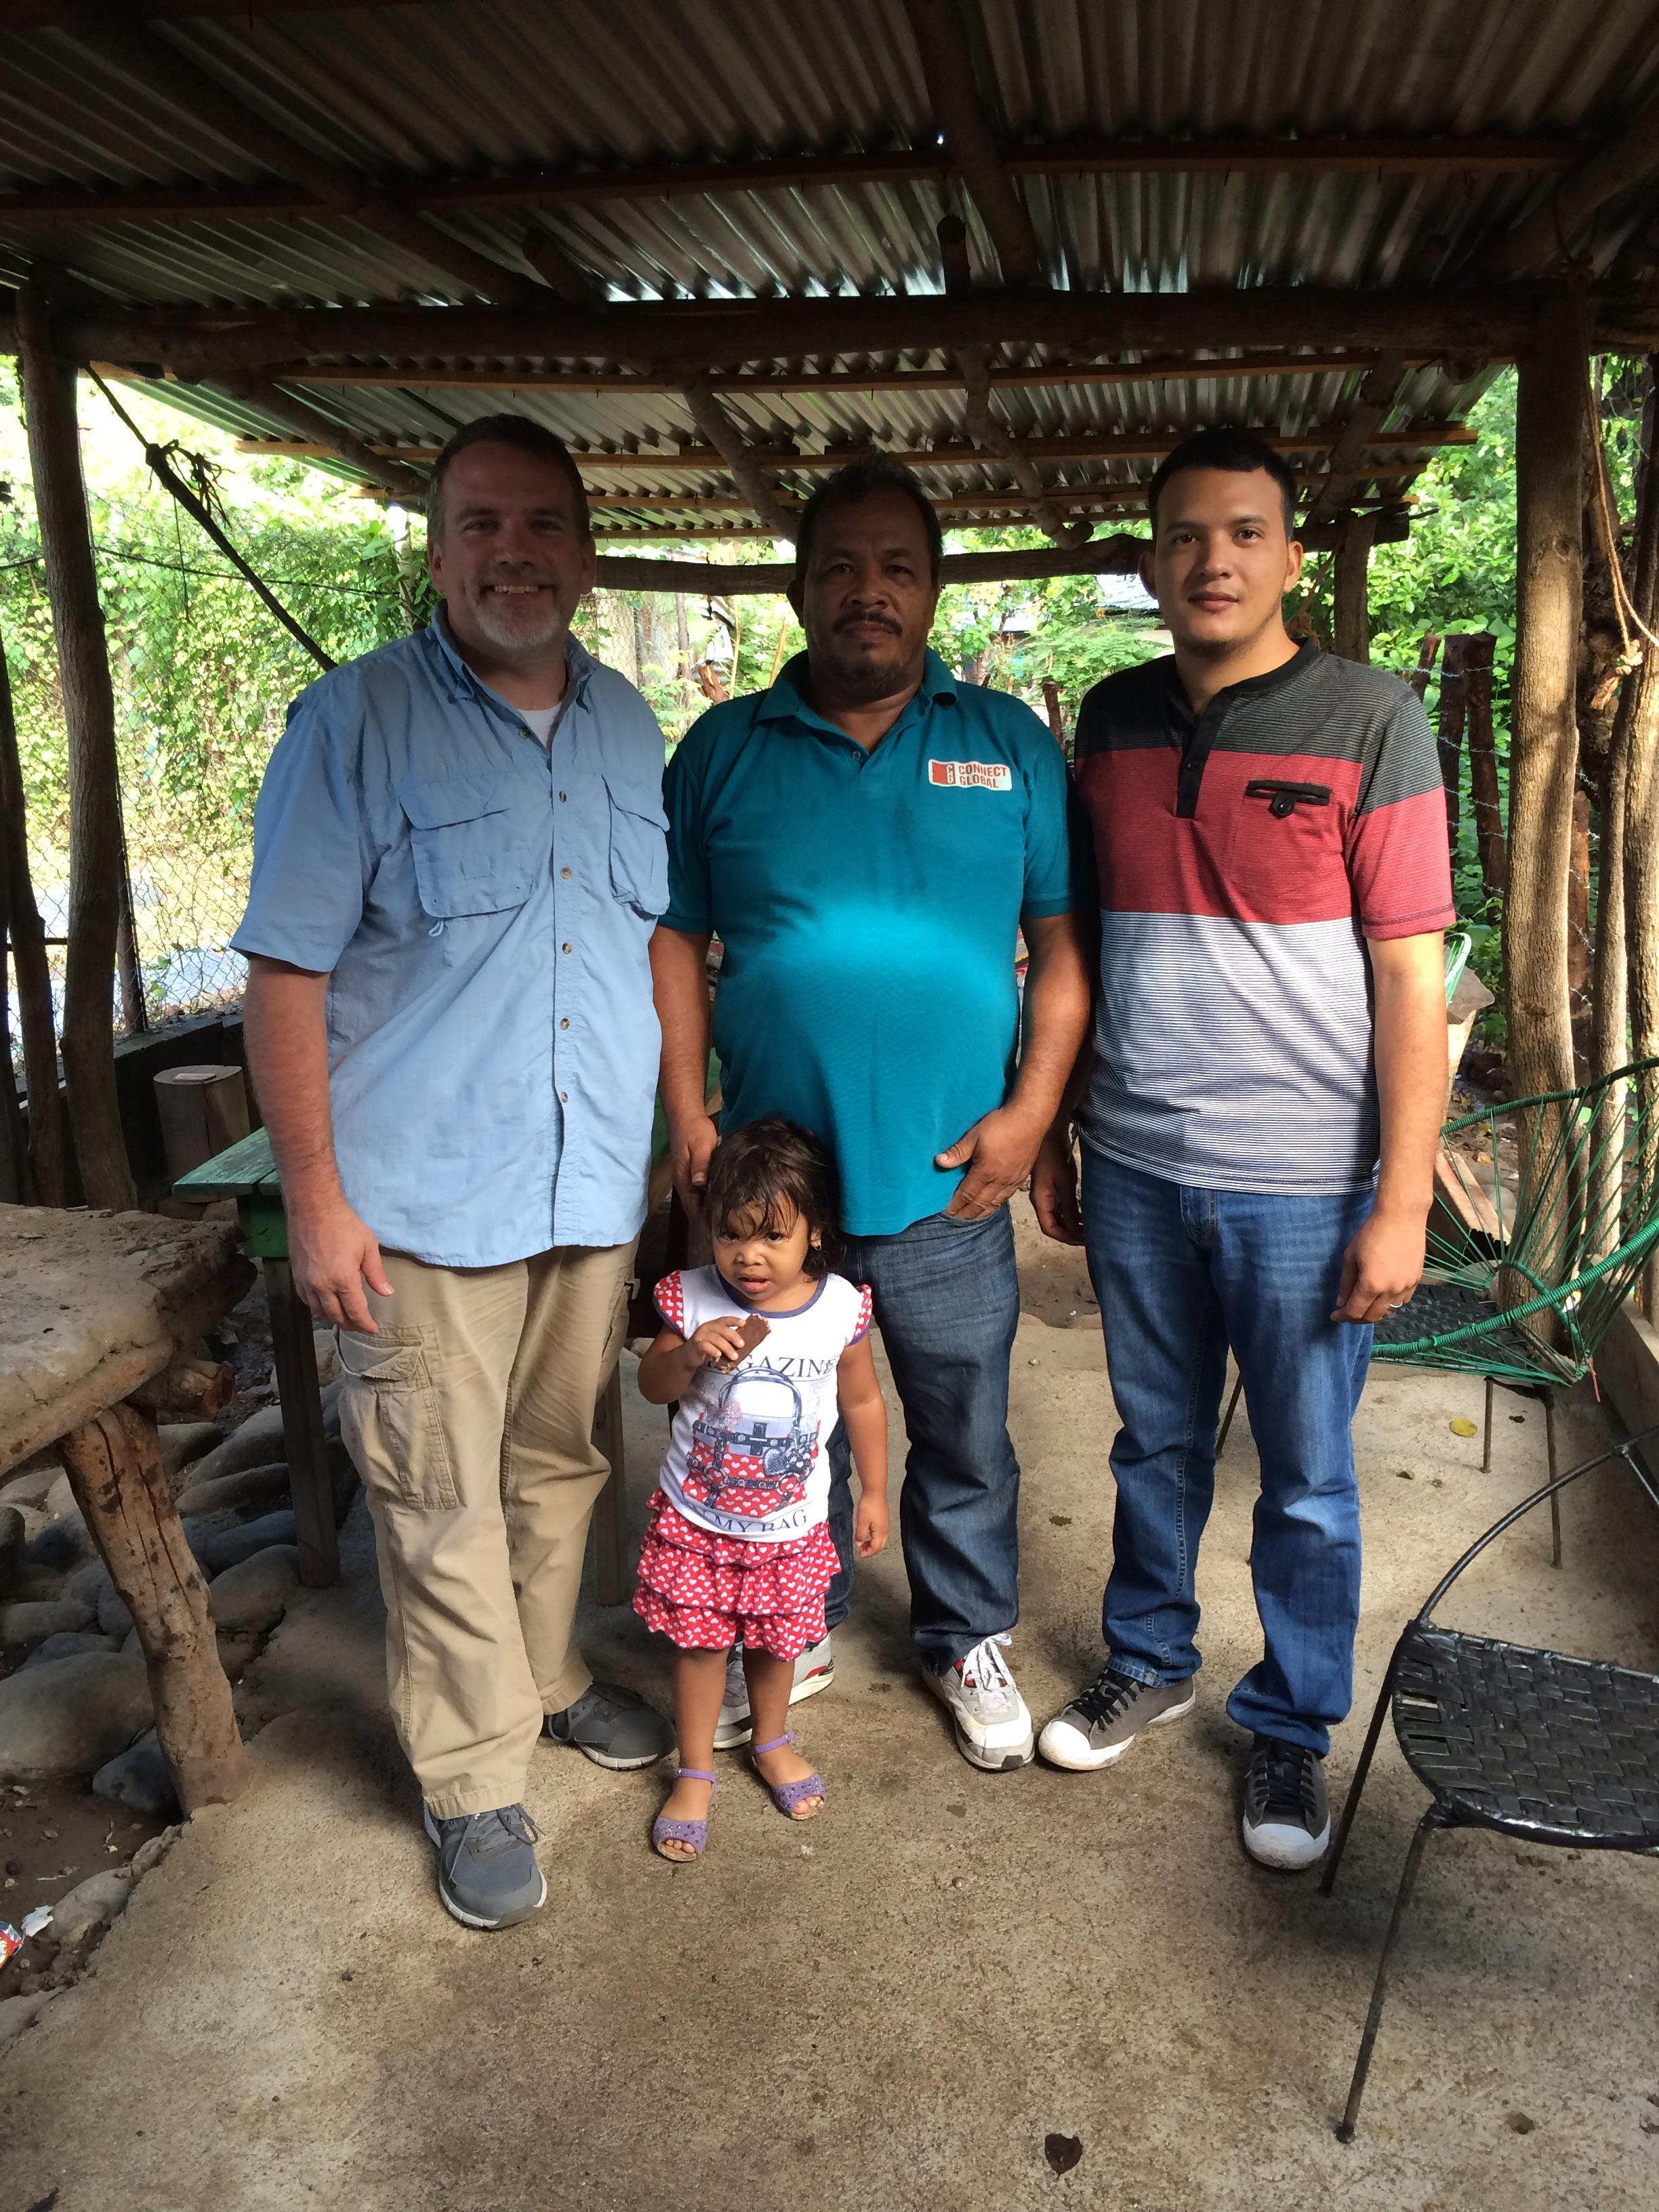 Travis Moffitt, Jorge and Allison Amador,  with Ricardo javier Amador Hernandez, President of the Water Management District in El Tamarindo